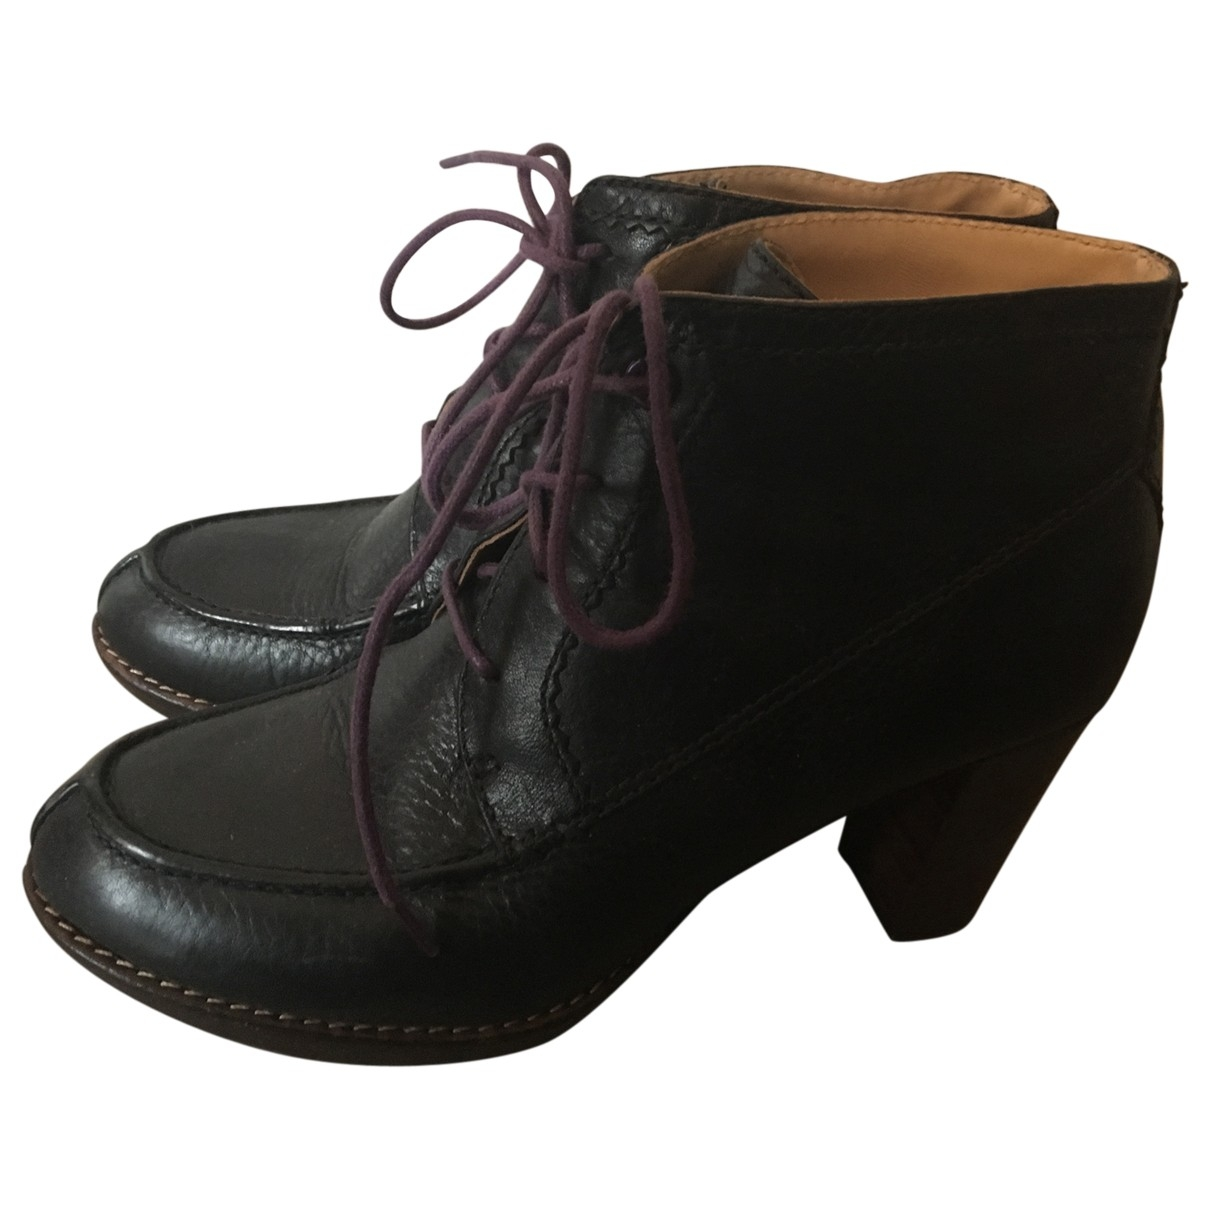 Paul Smith \N Black Leather Ankle boots for Women 39 EU